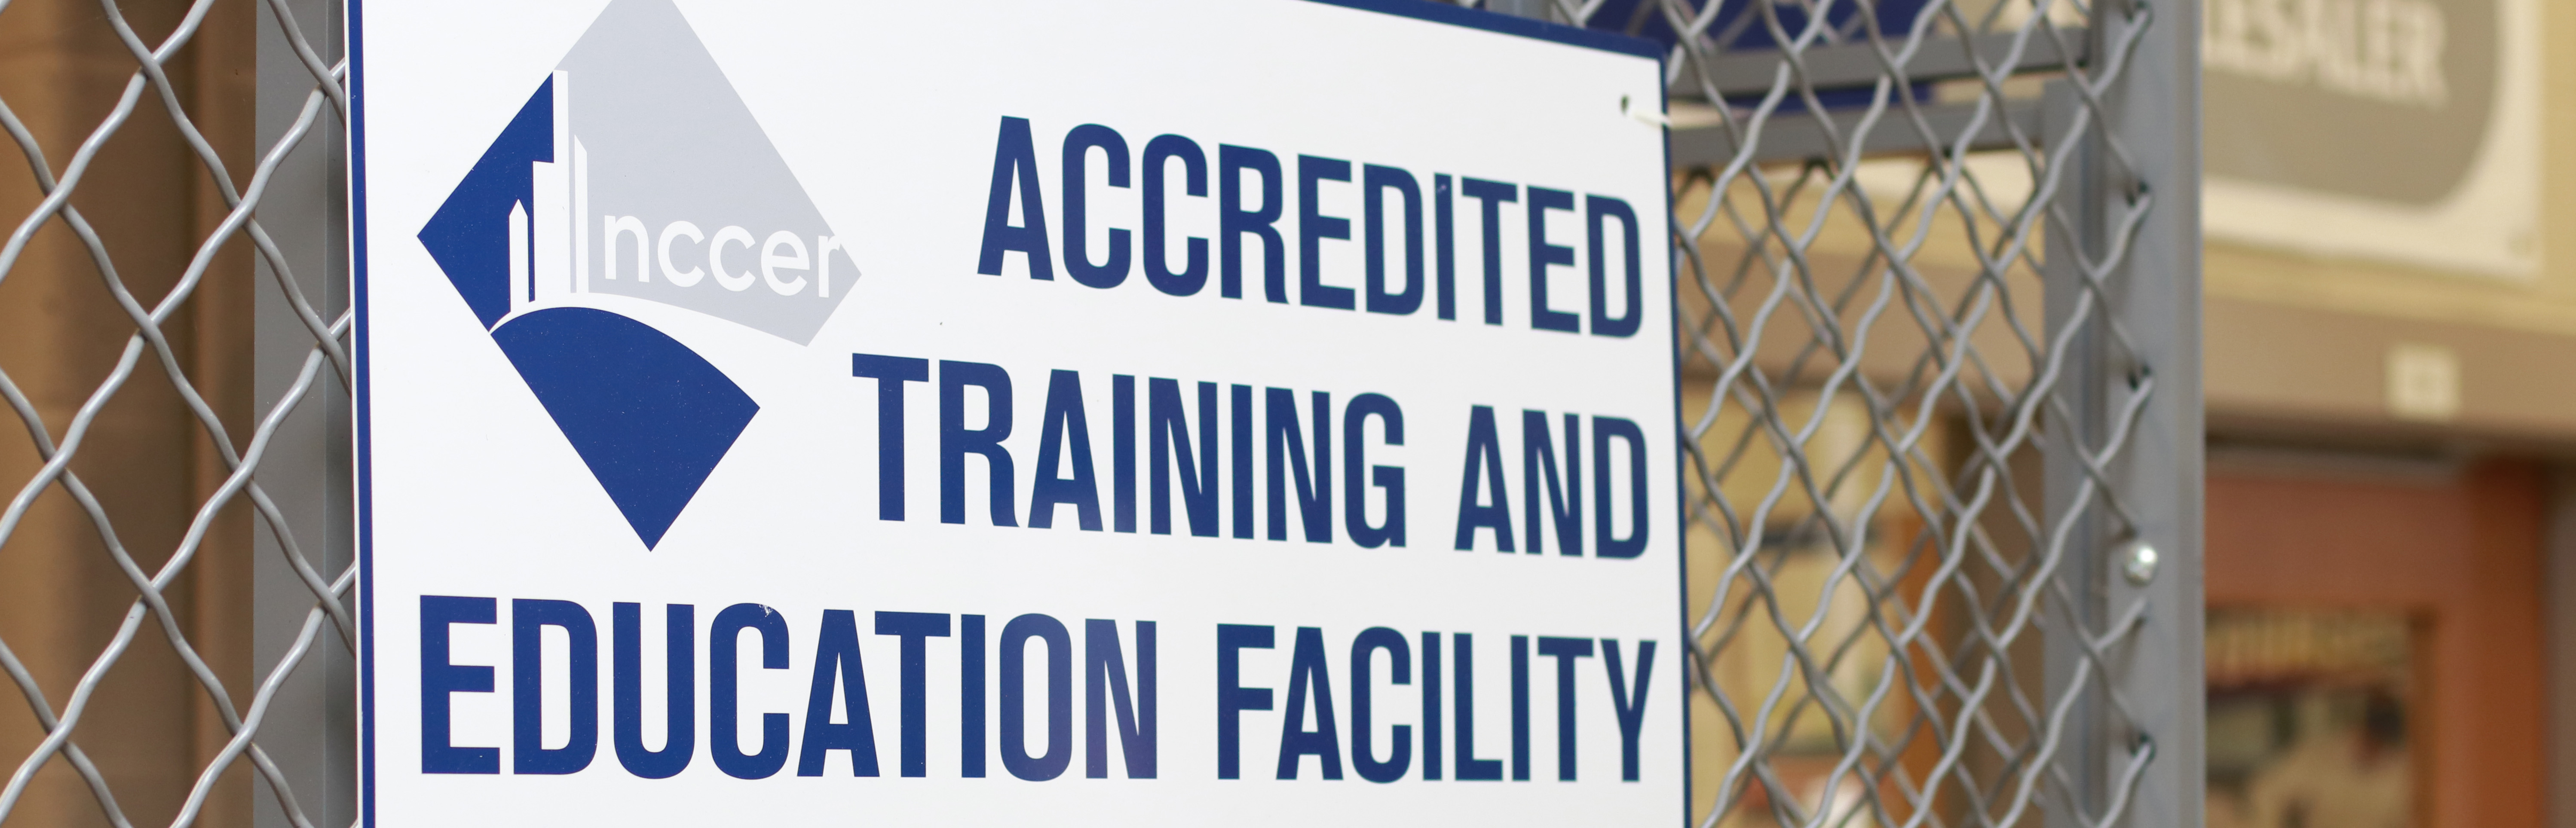 NCCER Accredited Training Site Sign